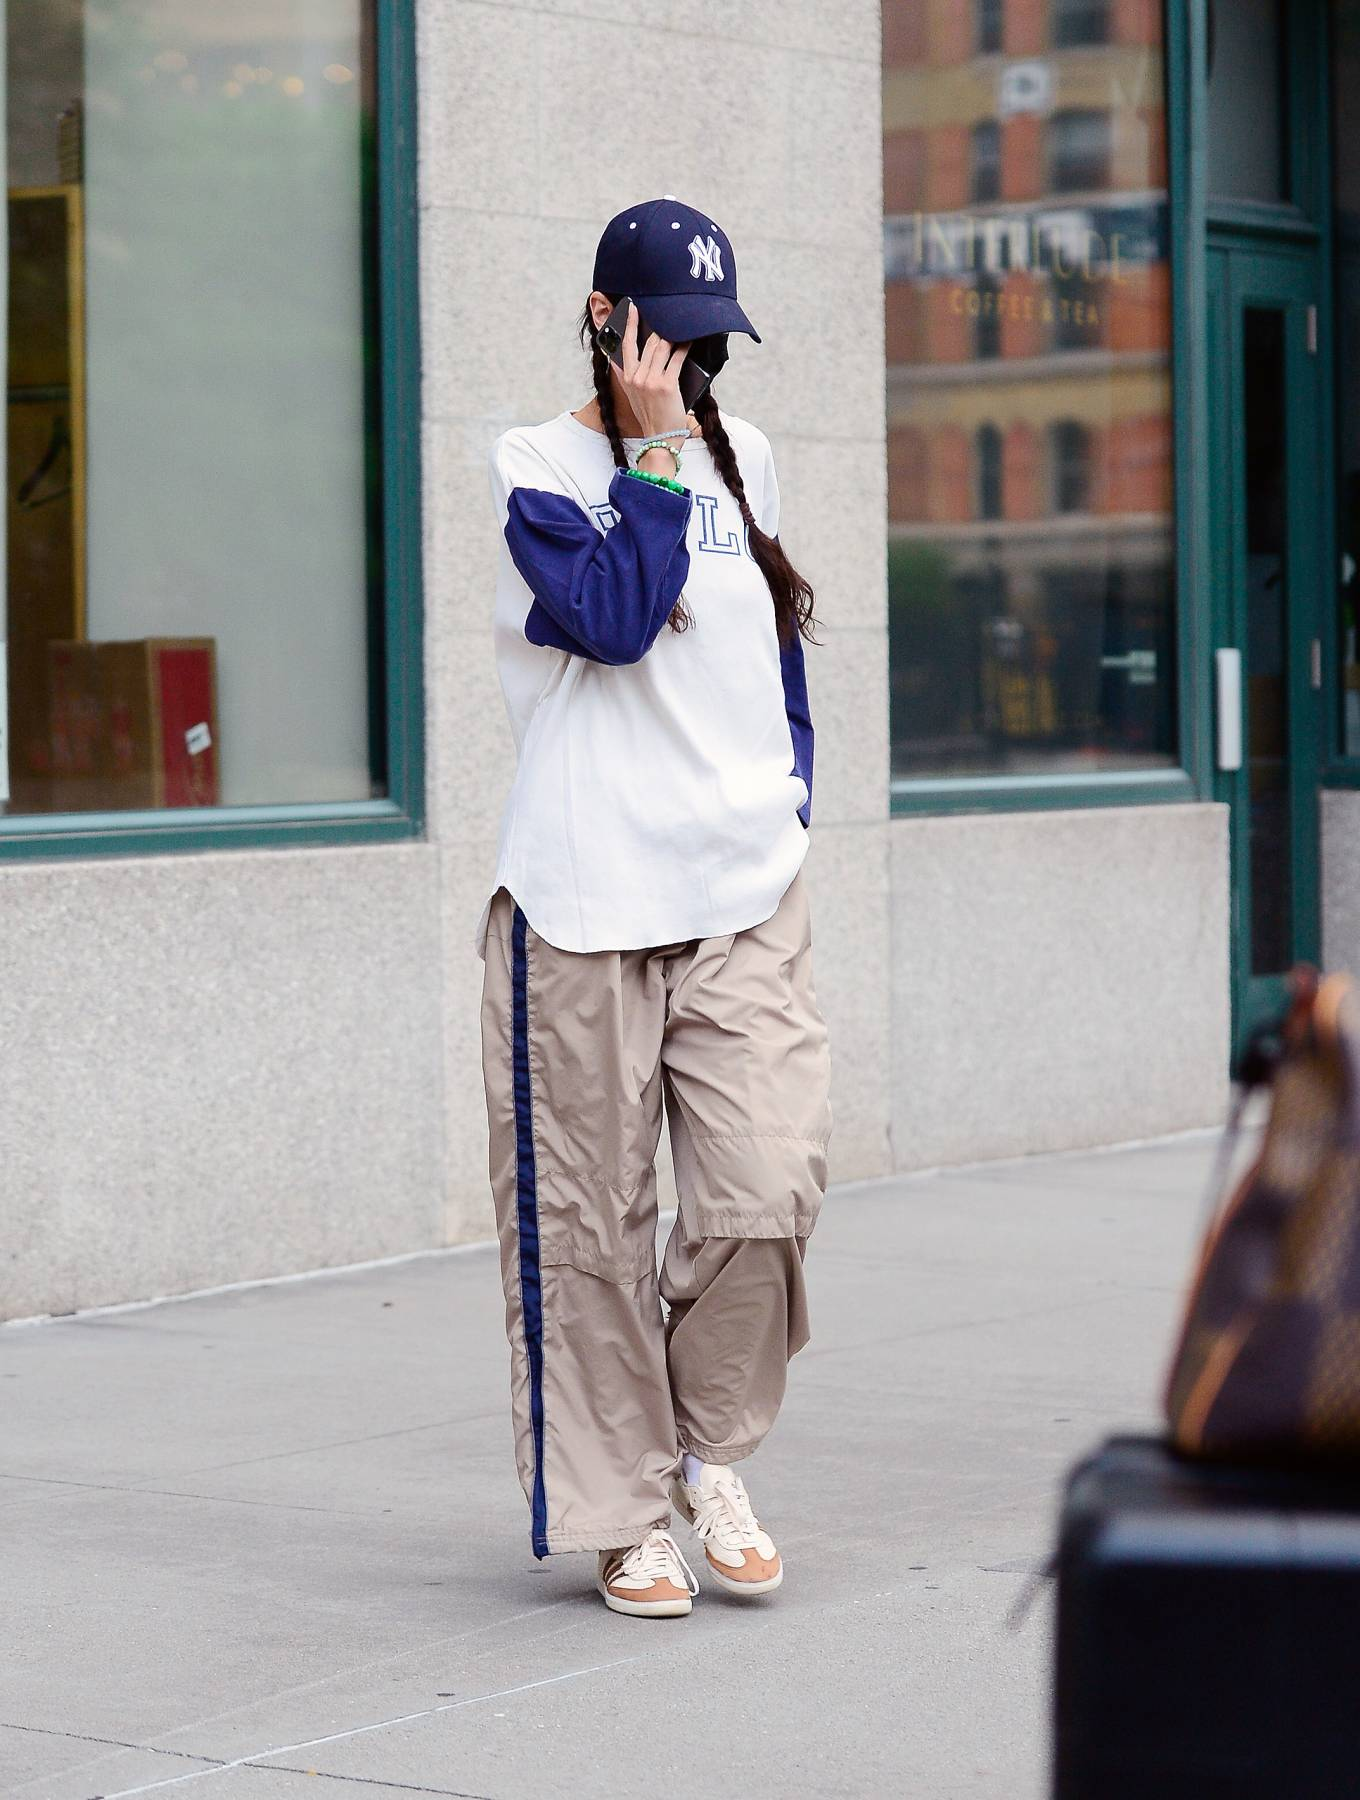 Bella Hadid, Adidas sneakers, white sneakers, oversized white graphic tee, round, lace-up, nude trousers. Bella Hadid wearing round white Adidas lace-up sneakers